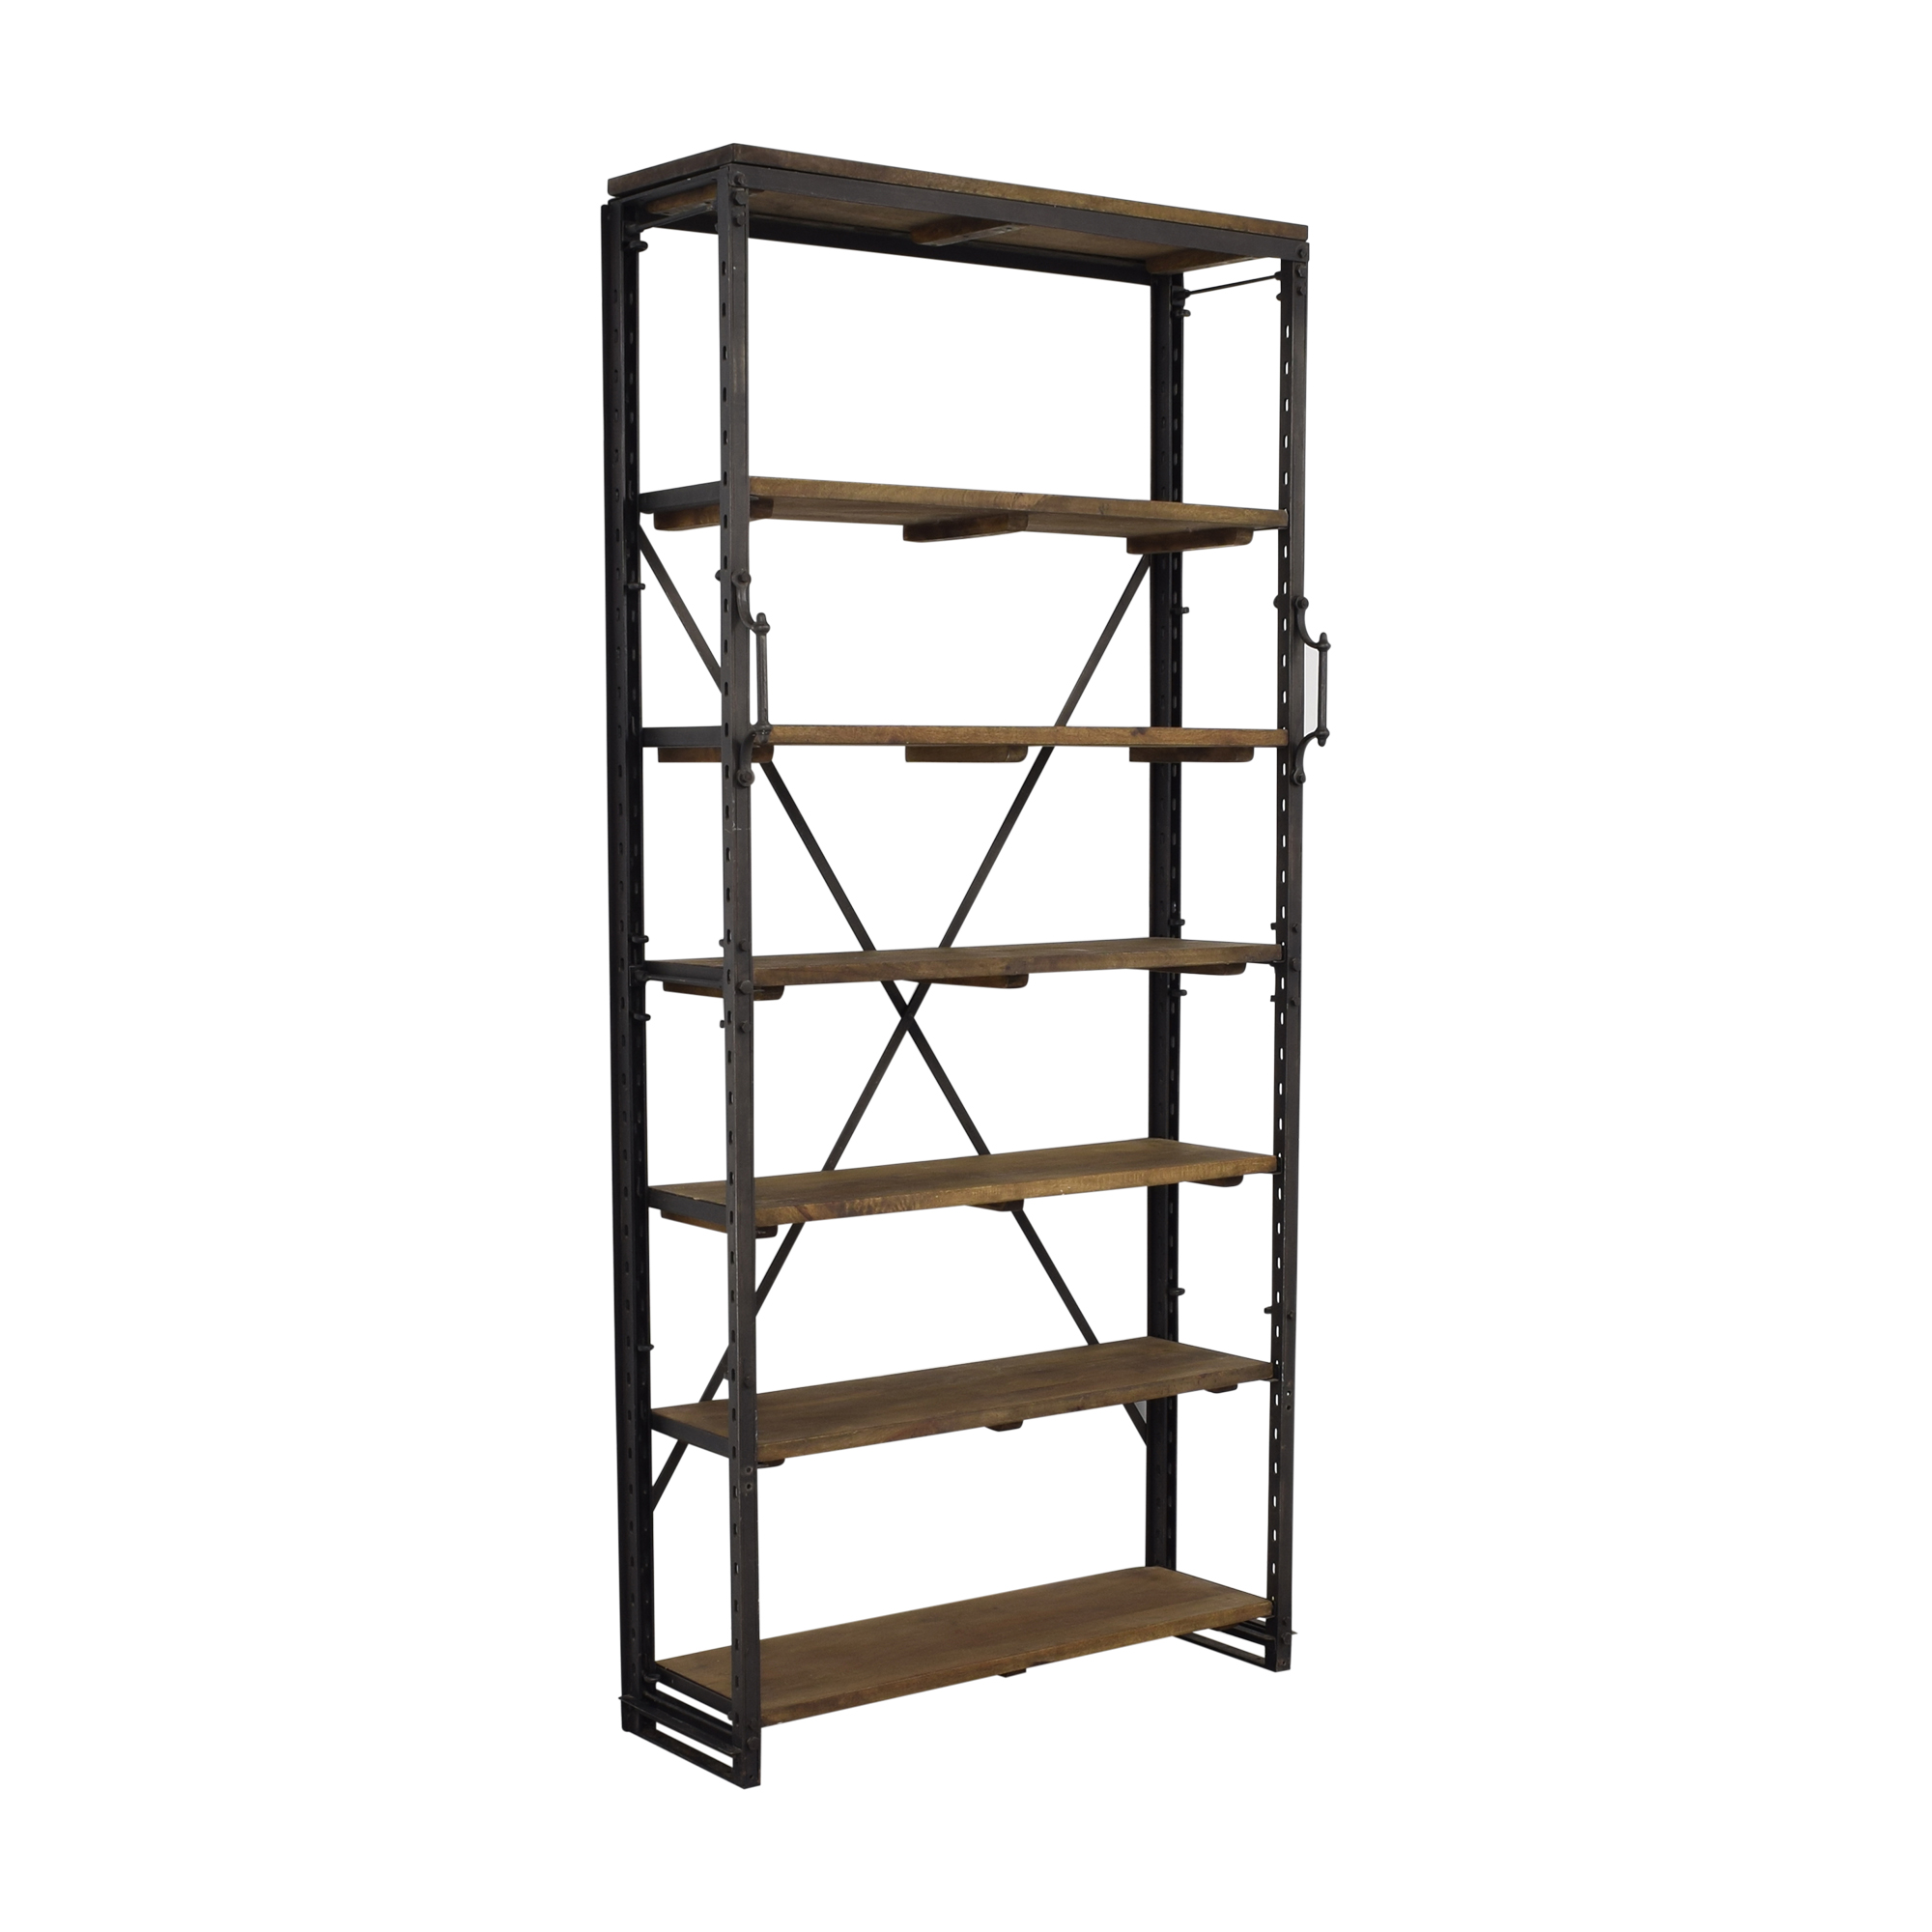 Restoration Hardware Restoration Hardware French Library Shelf for sale